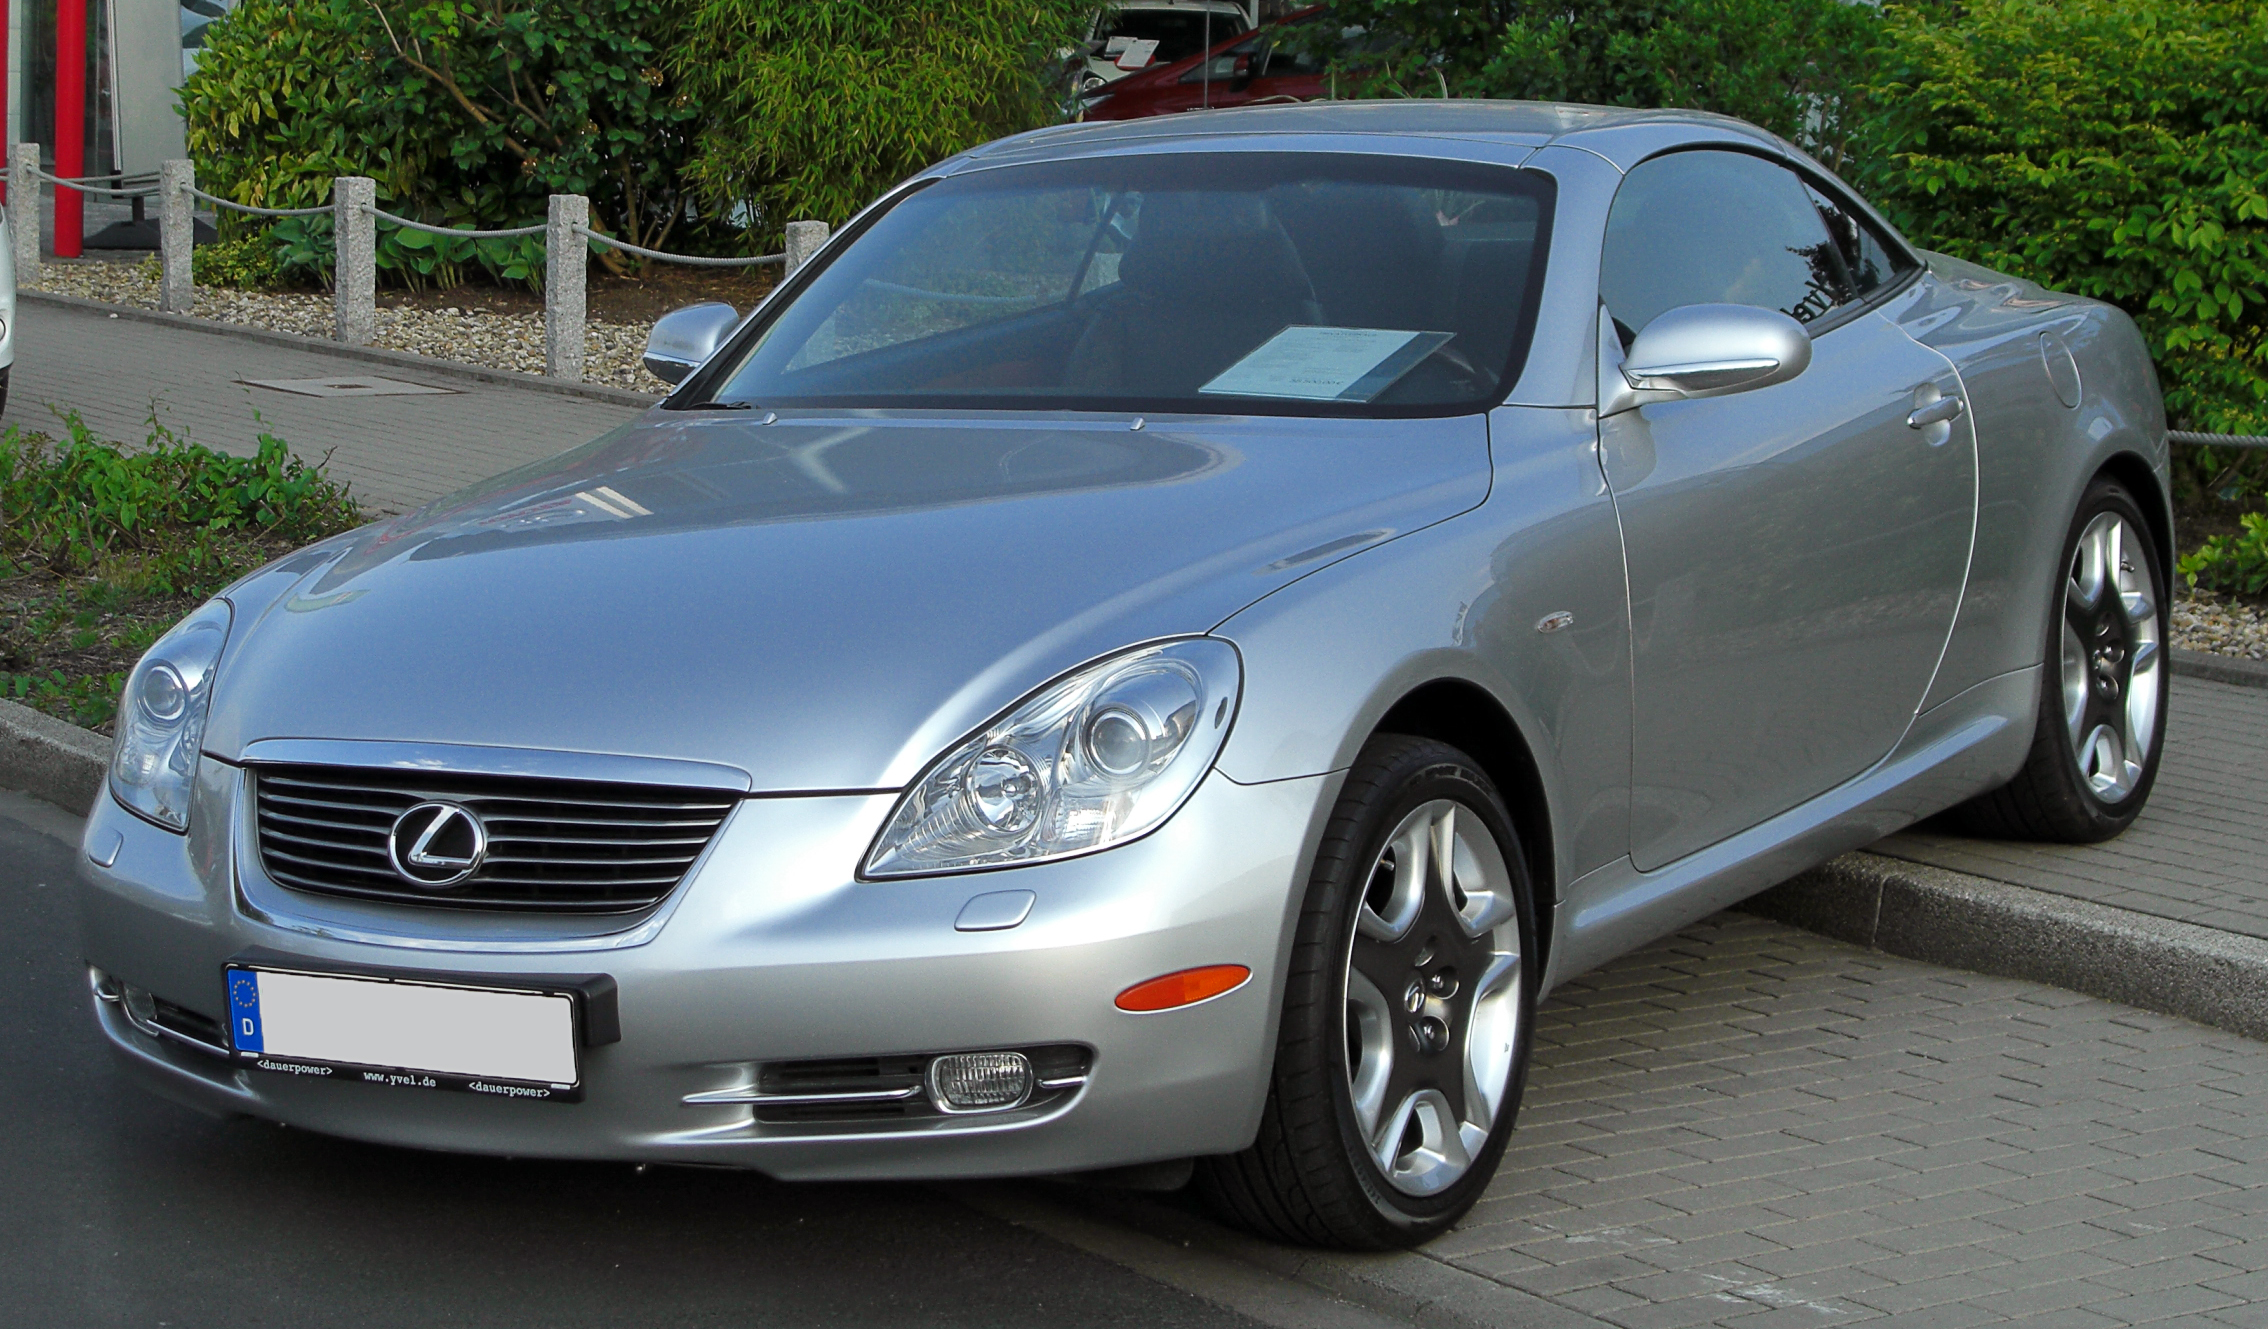 2003 Lexus Sc 430 Information And Photos Momentcar